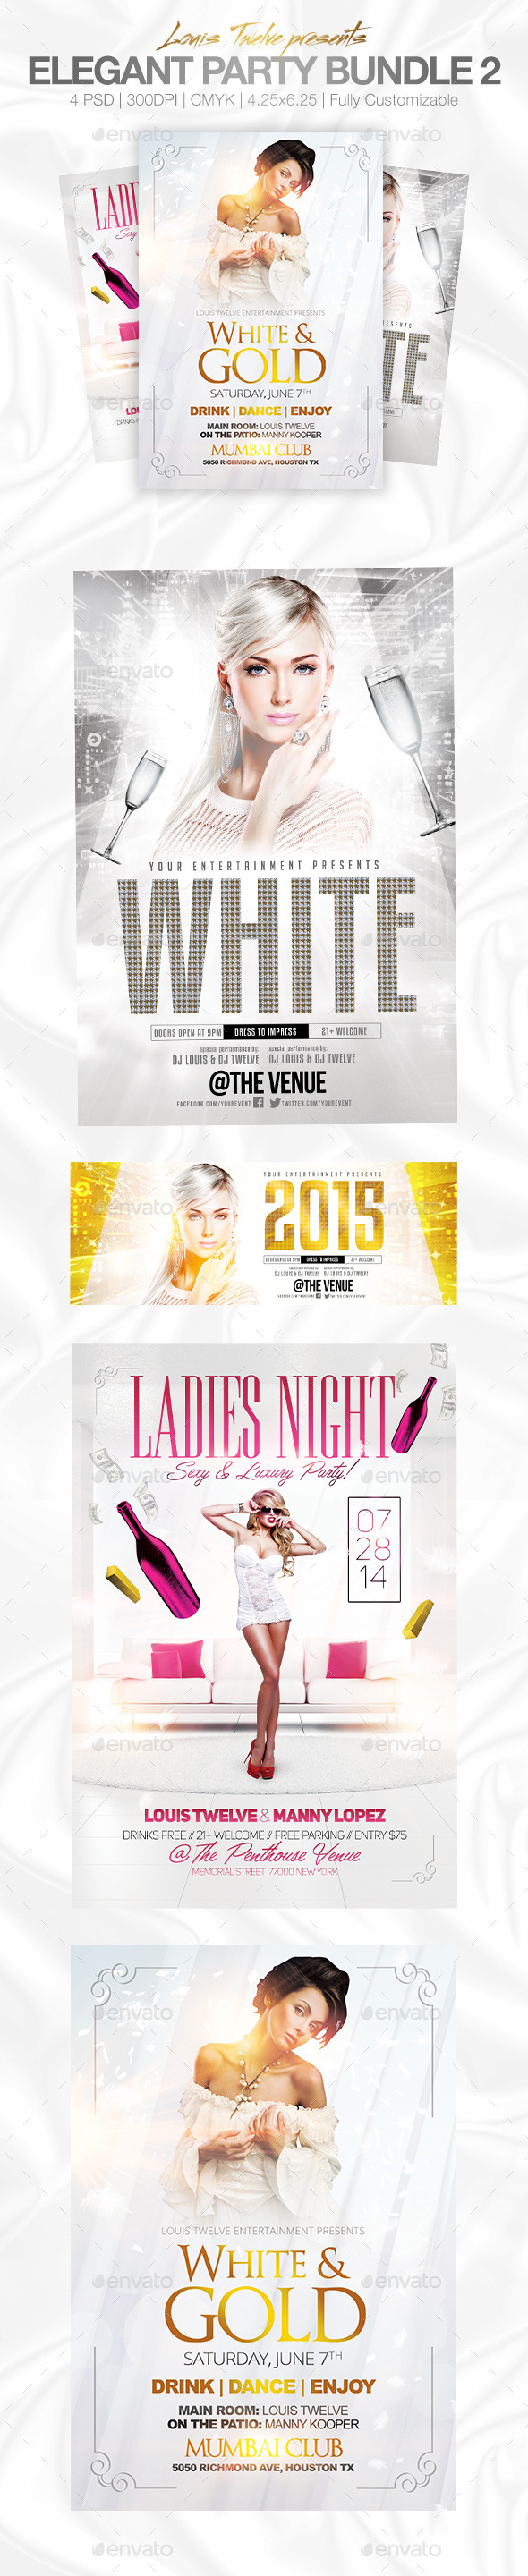 Elegant Party Flyer Bundle - White Affair Edition - Clubs & Parties Events